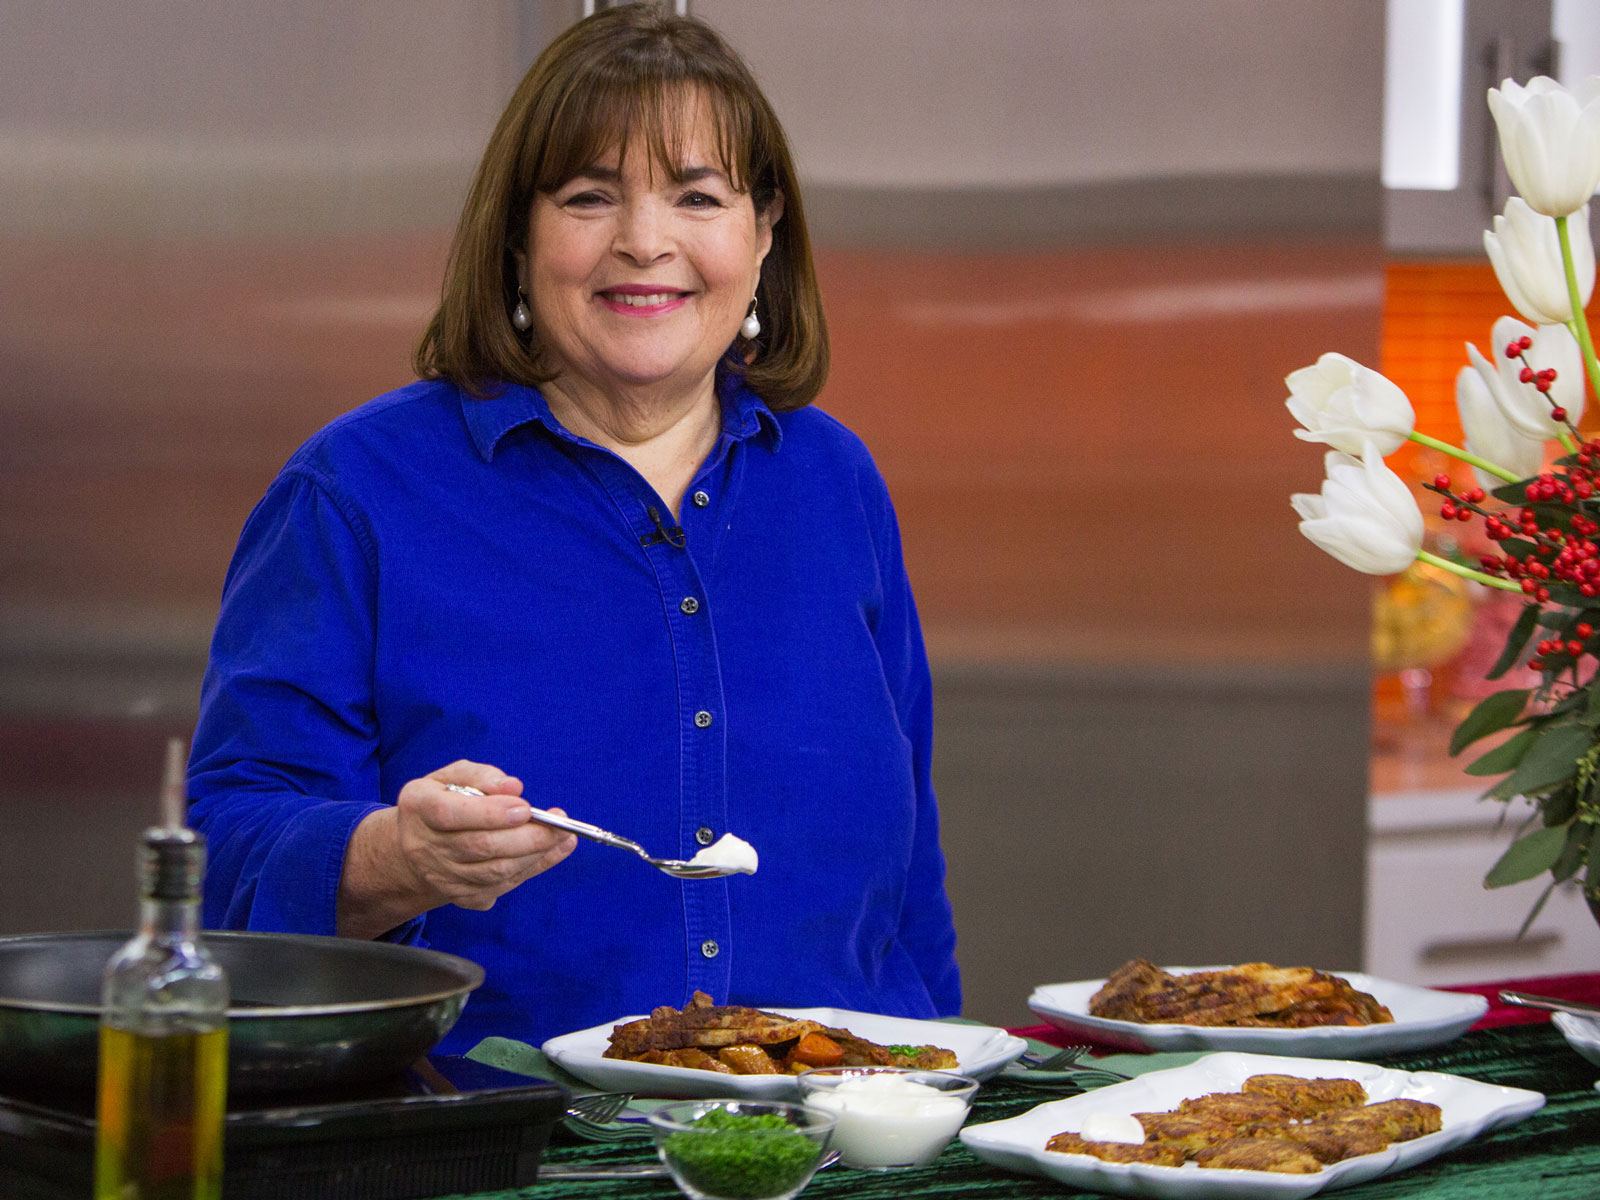 Ina Garten Women Who Rock Playlist